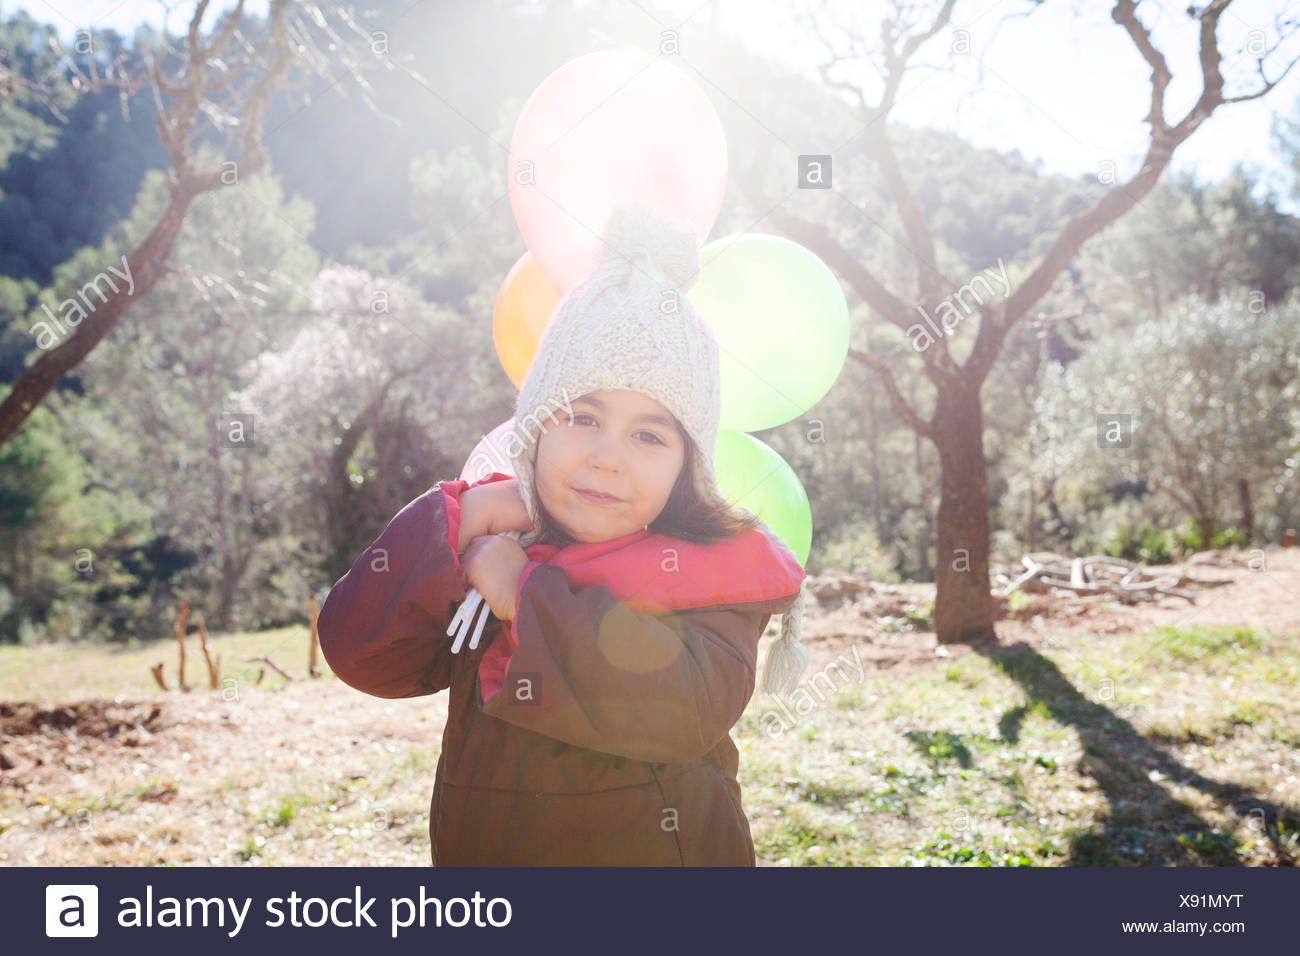 Spain, Gallifa, portrait of little girl with balloons wearing bobble hat - Stock Image